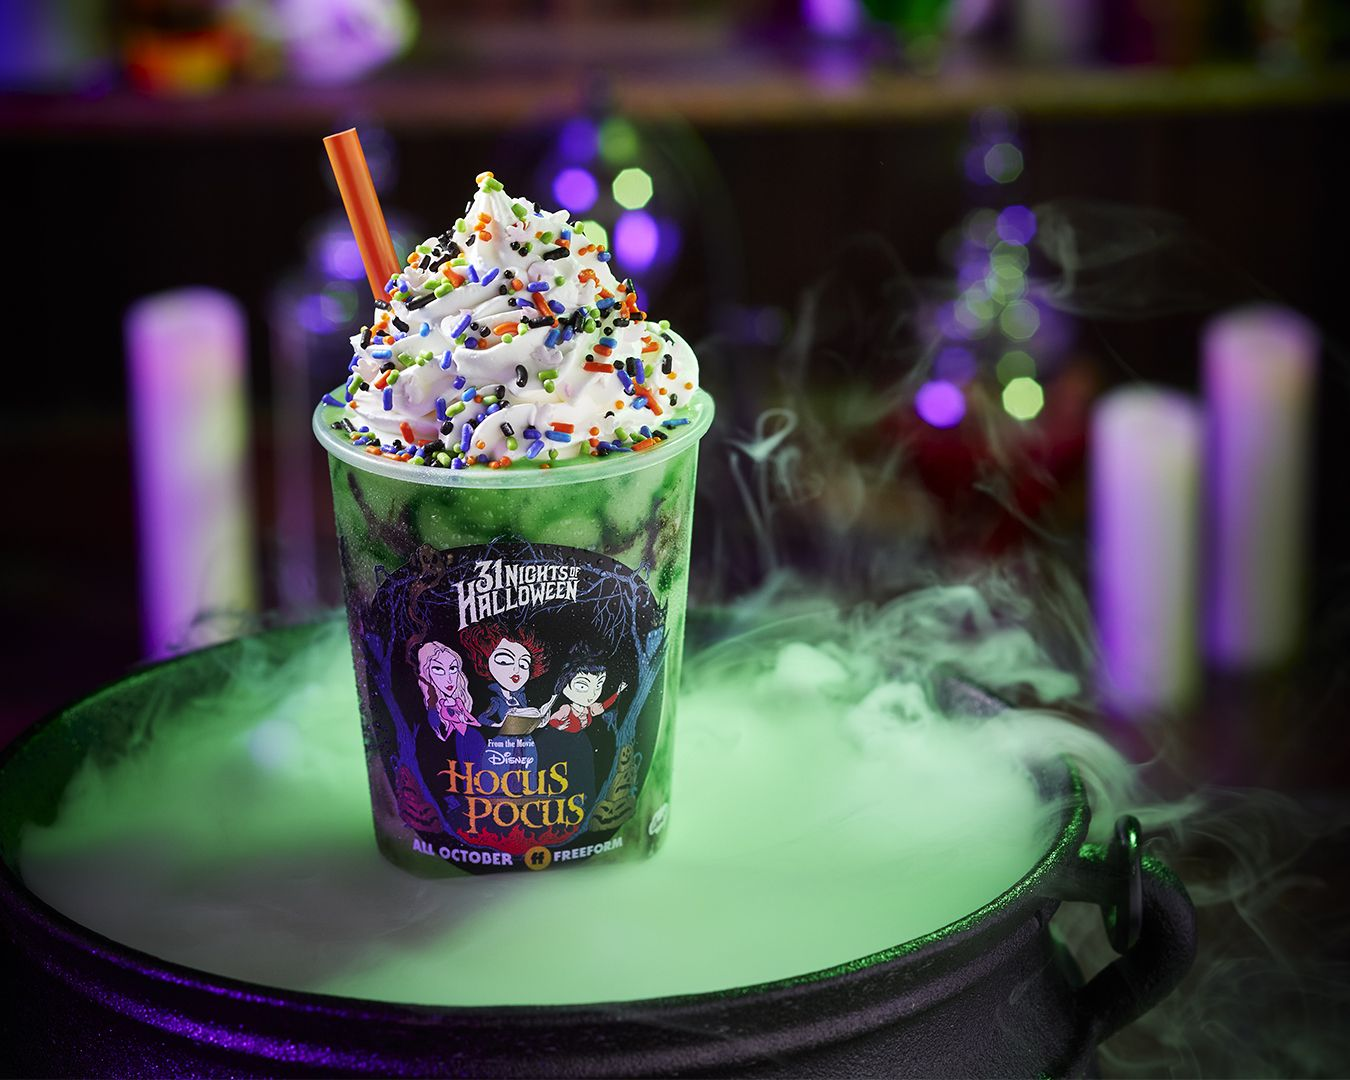 Freeform and Carvel Ice Cream Create Hocus Pocus Shake for 31 Nights of Halloween. Credit: Carvel